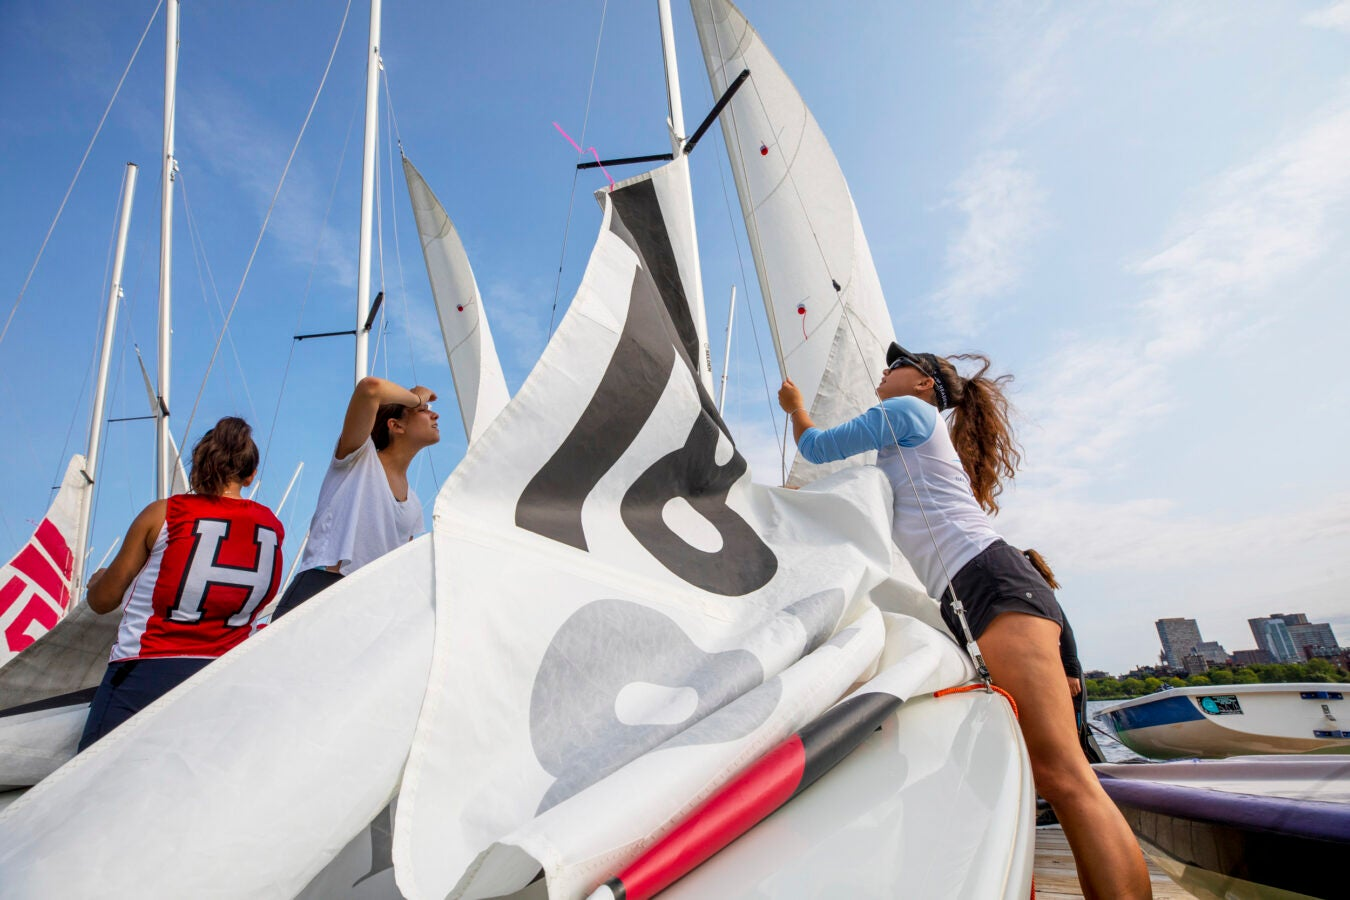 Leah Margulies, left, learns about raising sails, tying knots, and more from Corinne Lee.